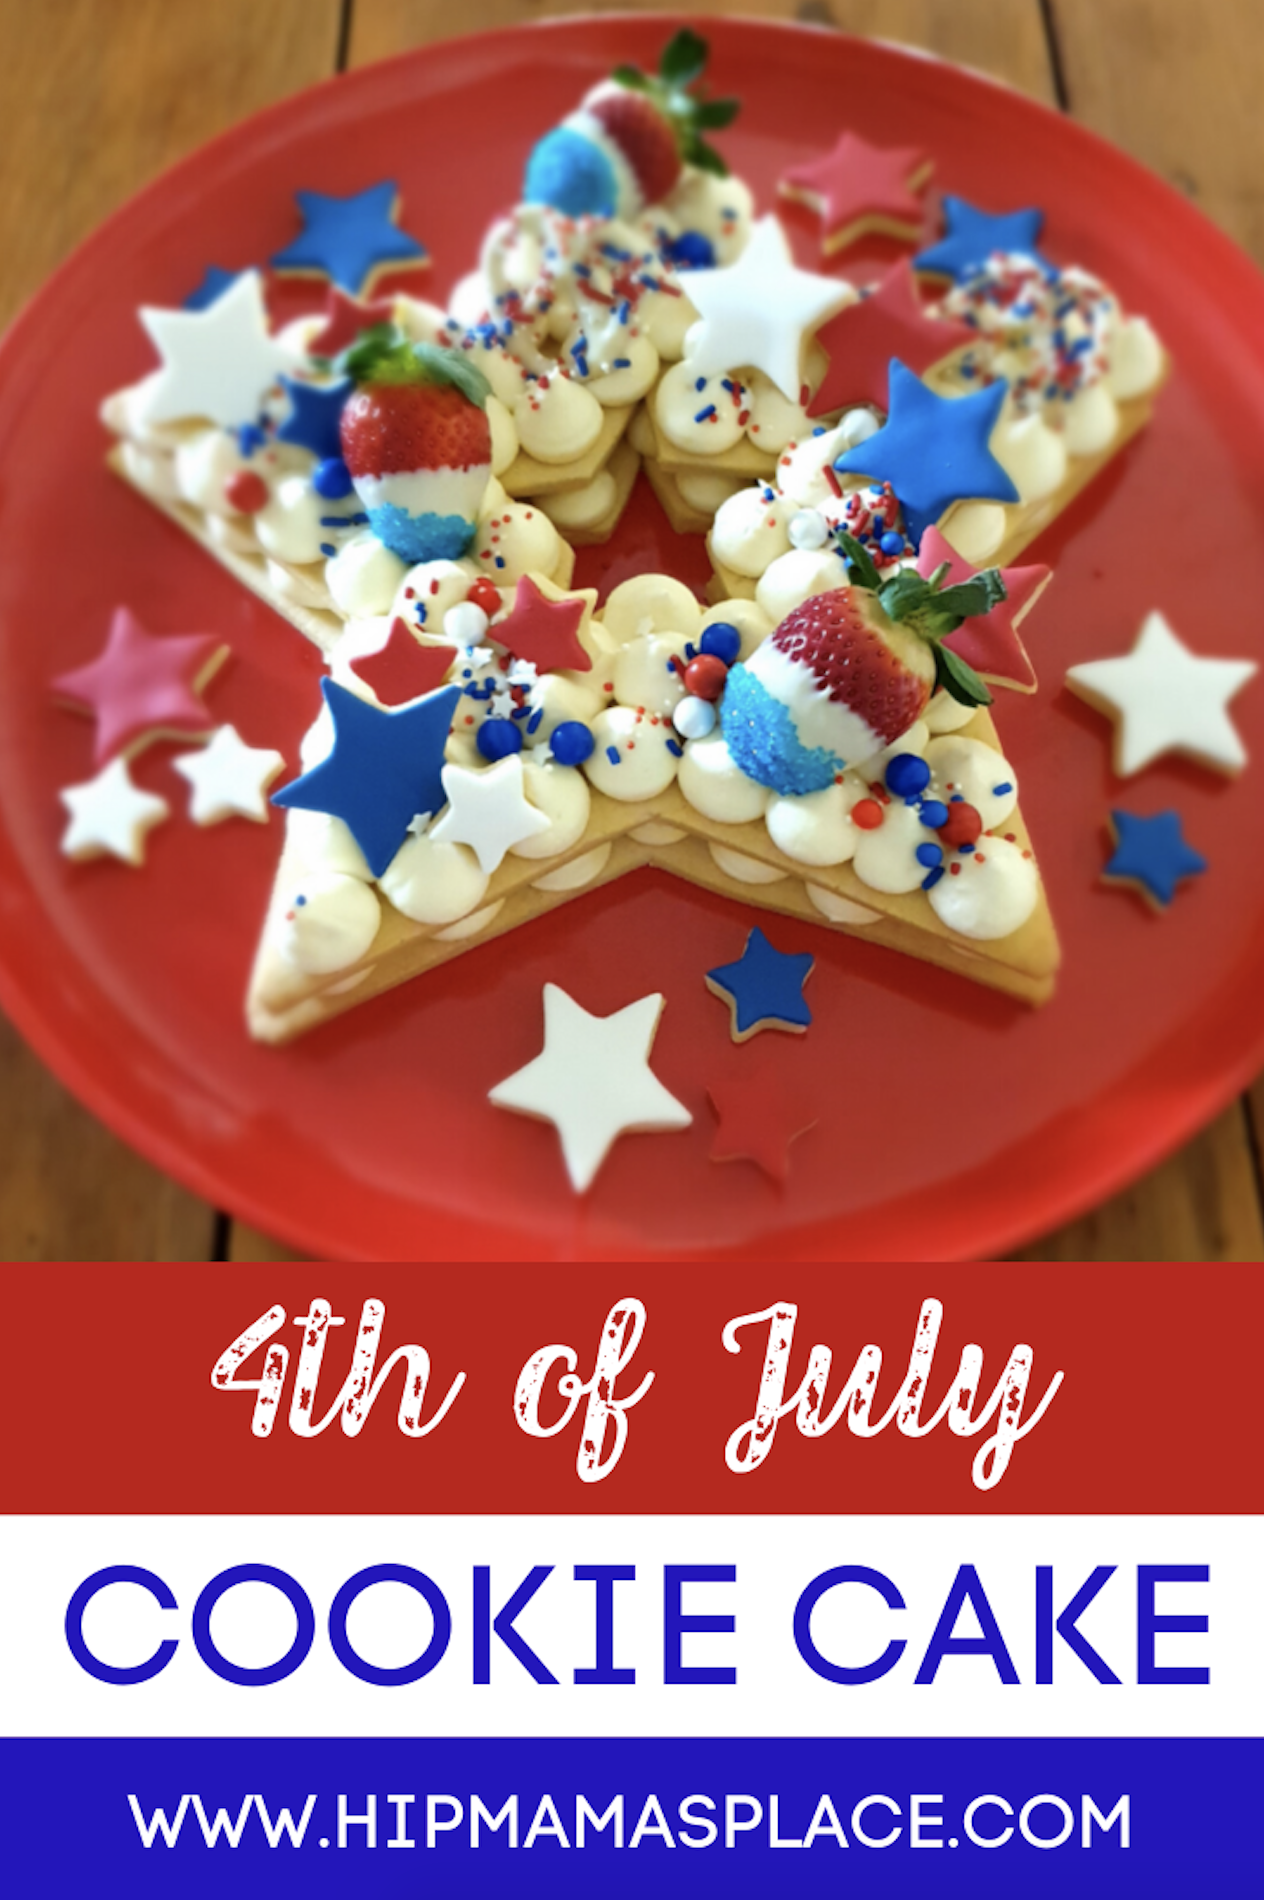 This delicious 4th of July cookie cake is made with 2 large star shaped vanilla cookies, 11 inches tall, layered with a white chocolate cheesecake filling, and topped with small star-shaped cookies with fondant, chocolate strawberries, chocolate pretzels and sprinkles. Brought to you by DoughCuts! #ad #cookiecake #4thofJulycookies #cookies #baking #desserts